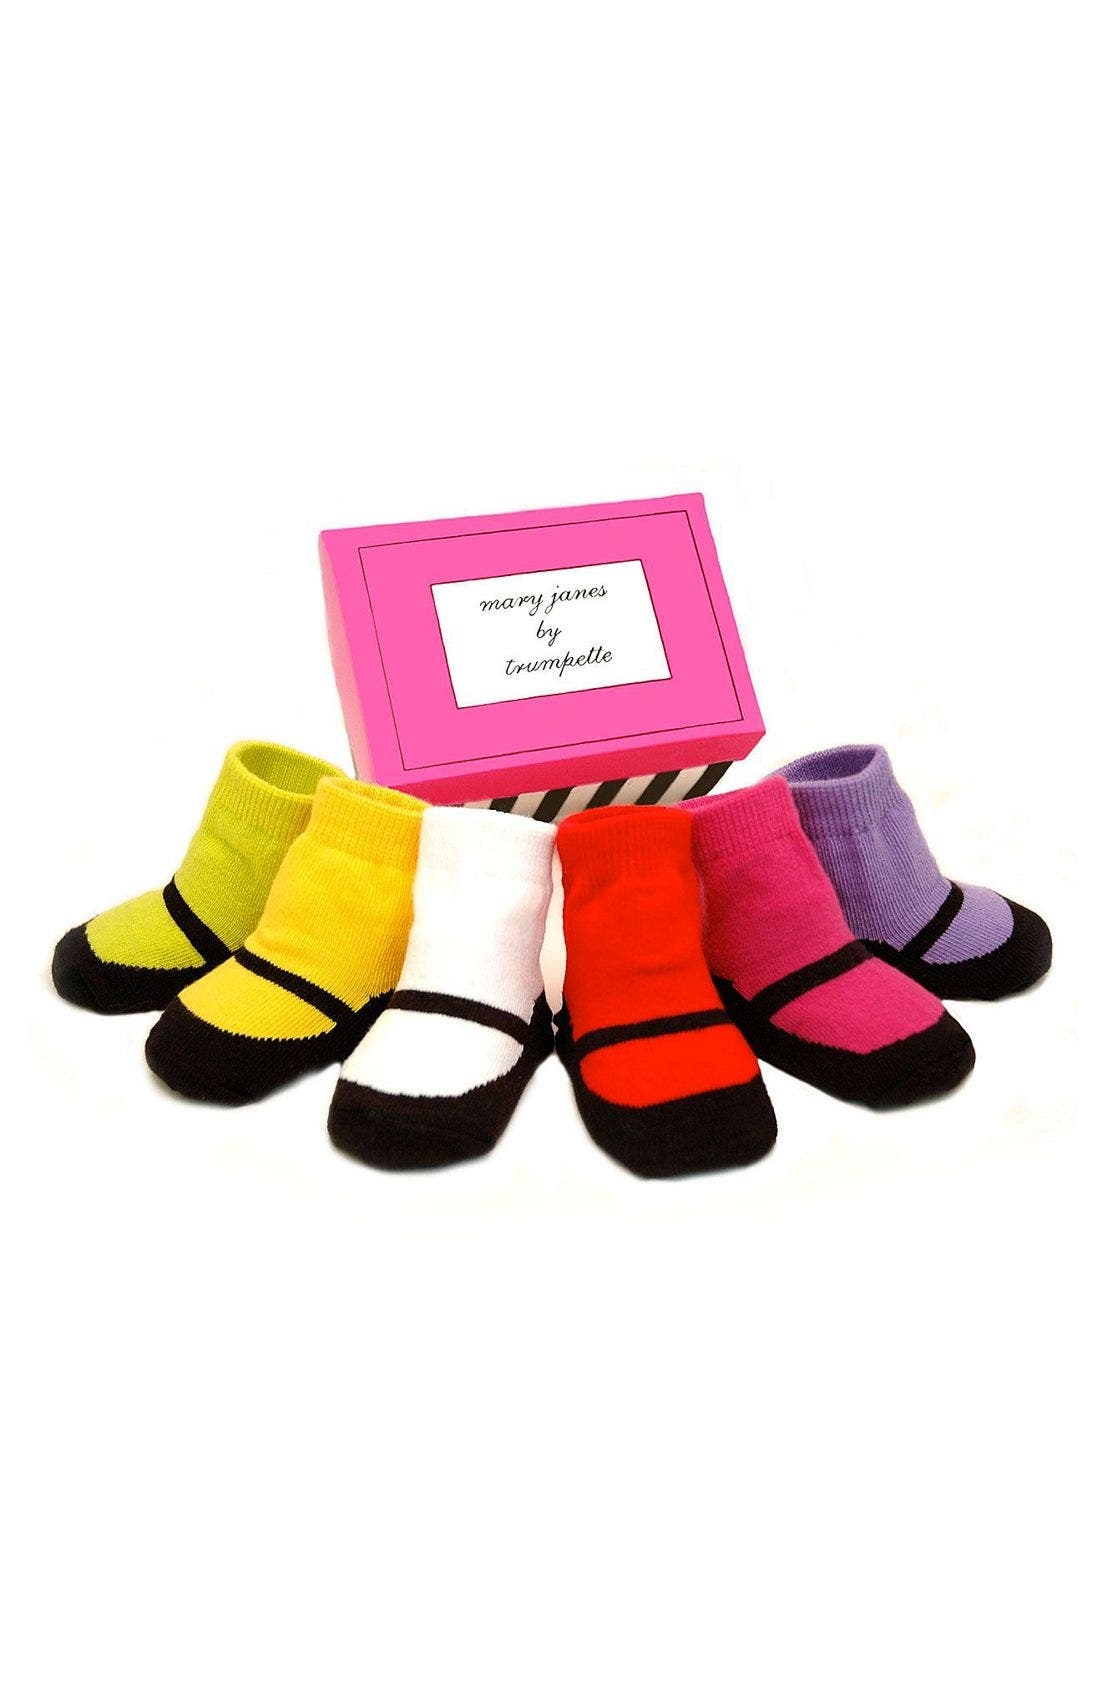 Alternate Image 1 Selected - Trumpette 'Mary Janes' Socks Gift Set (Baby Girls)